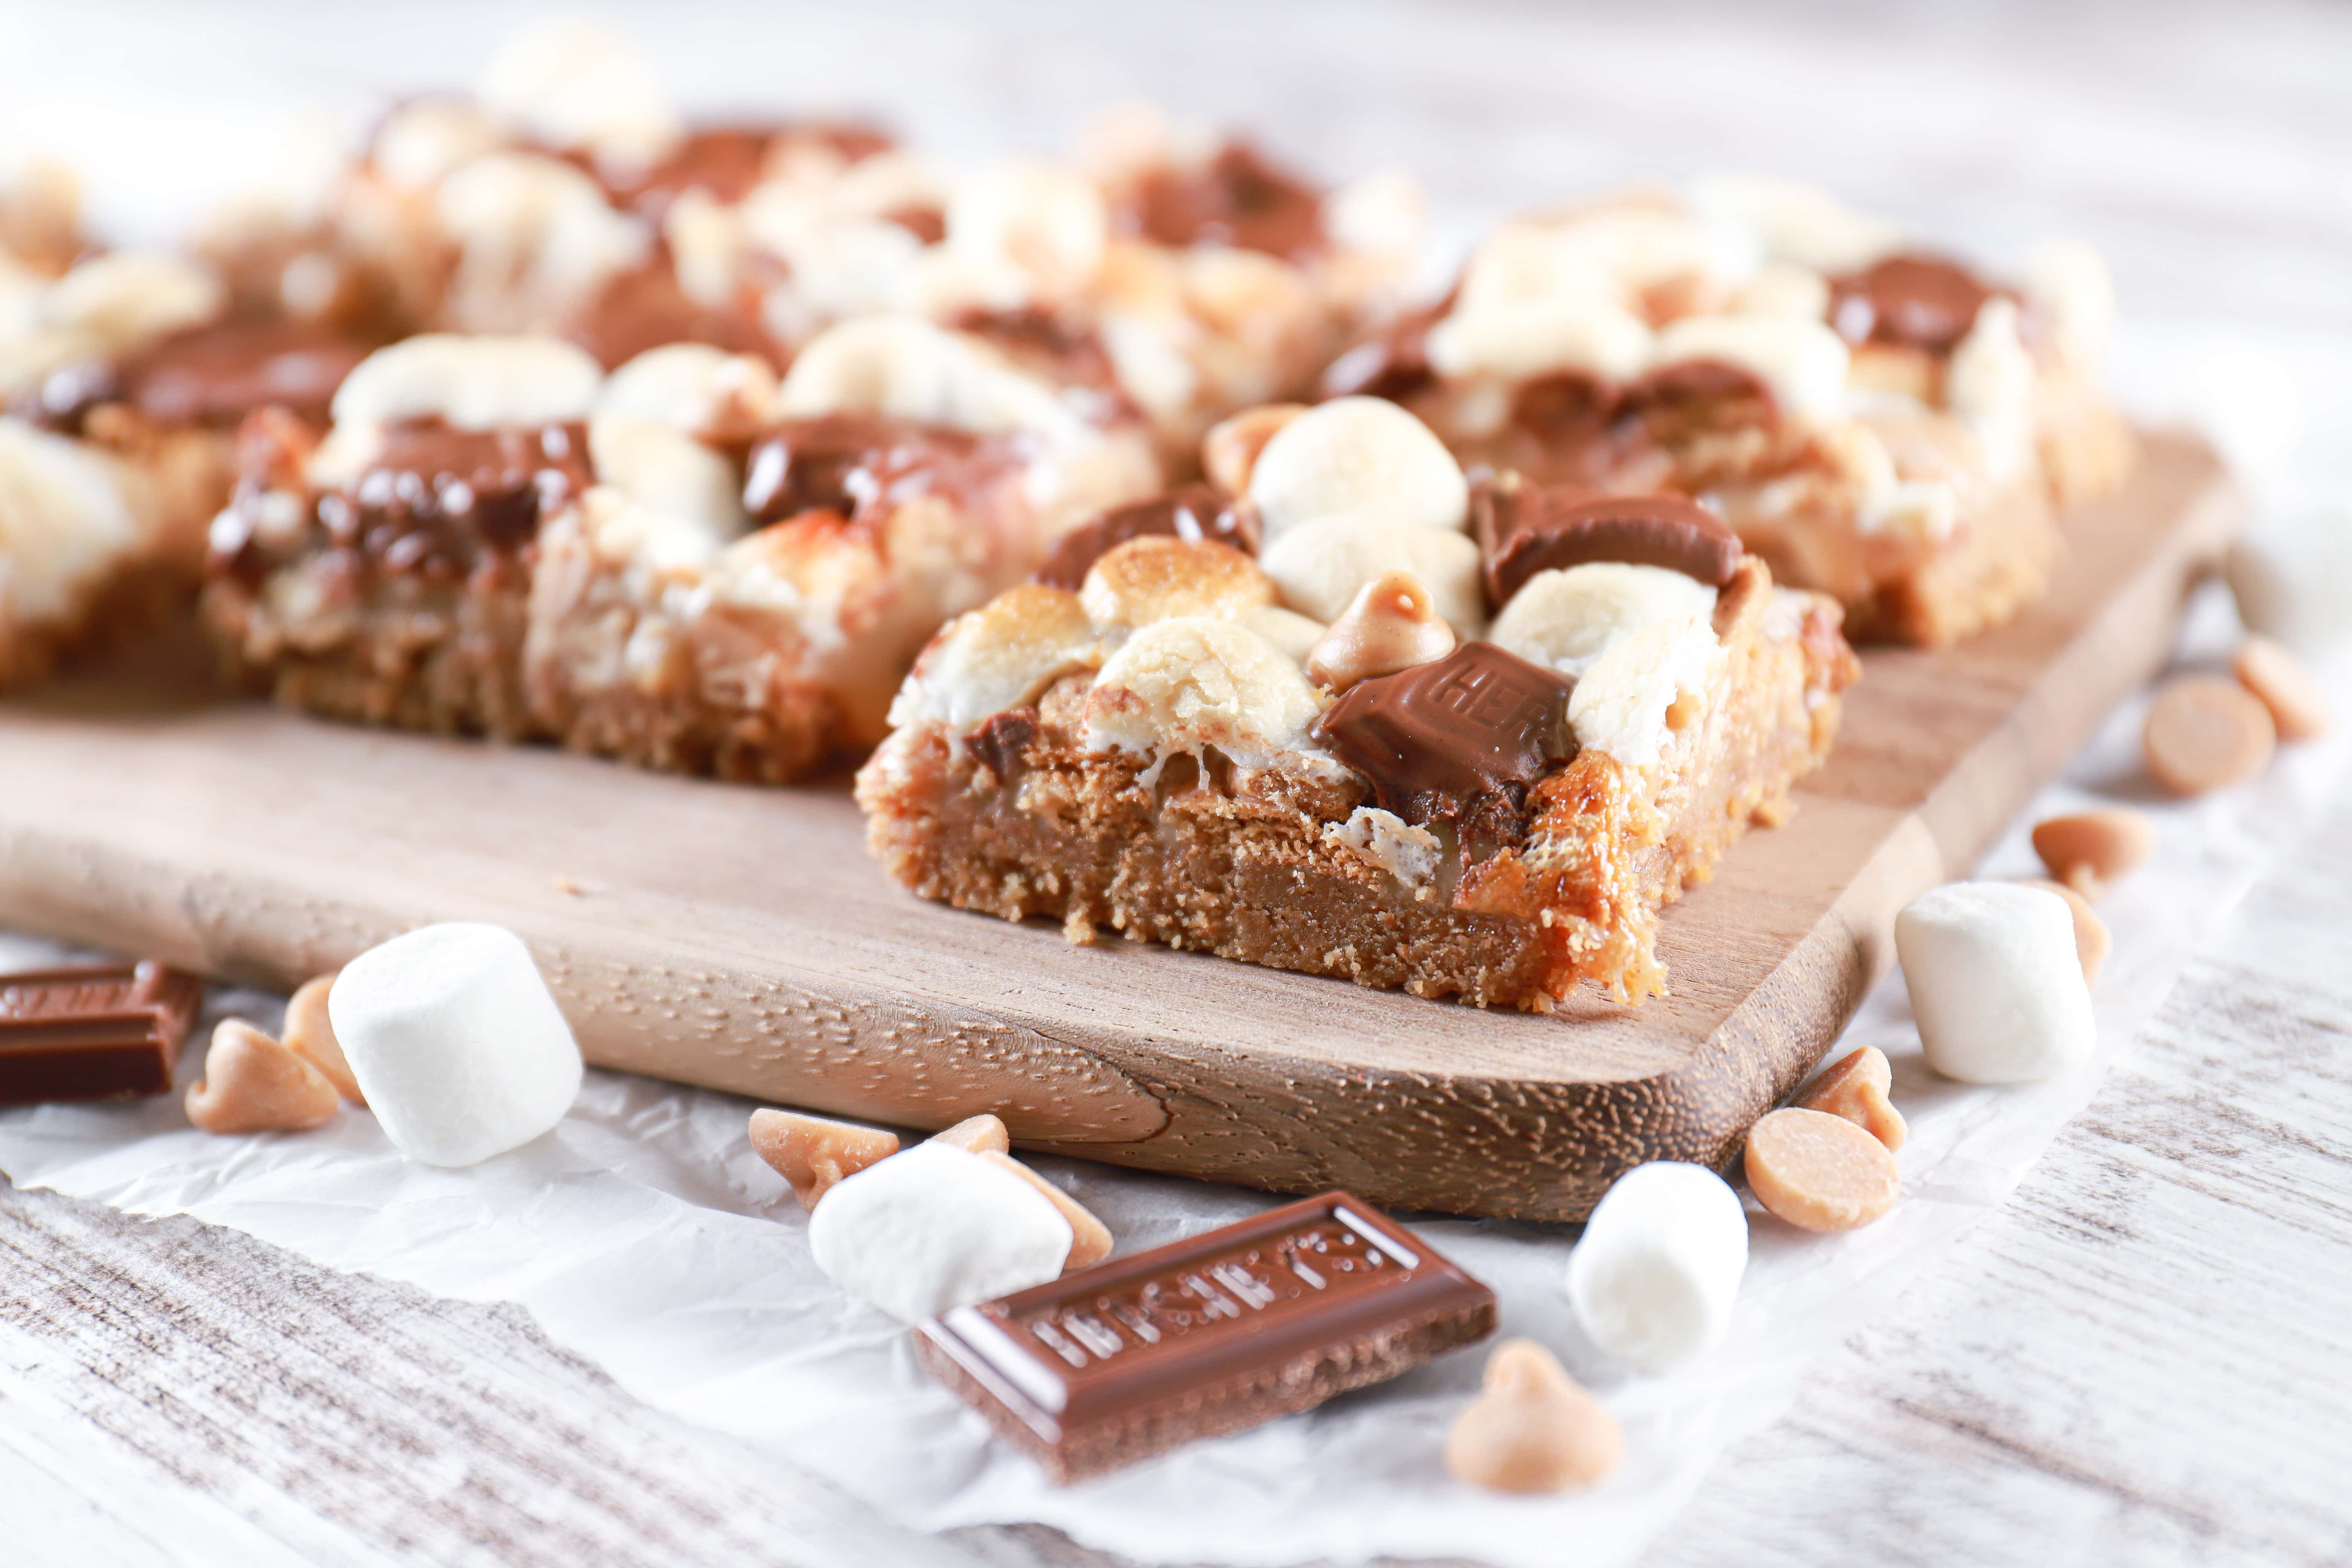 Peanut butter smores seven layer bars on a wooden cutting board. Recipe from A Kitchen Addiction